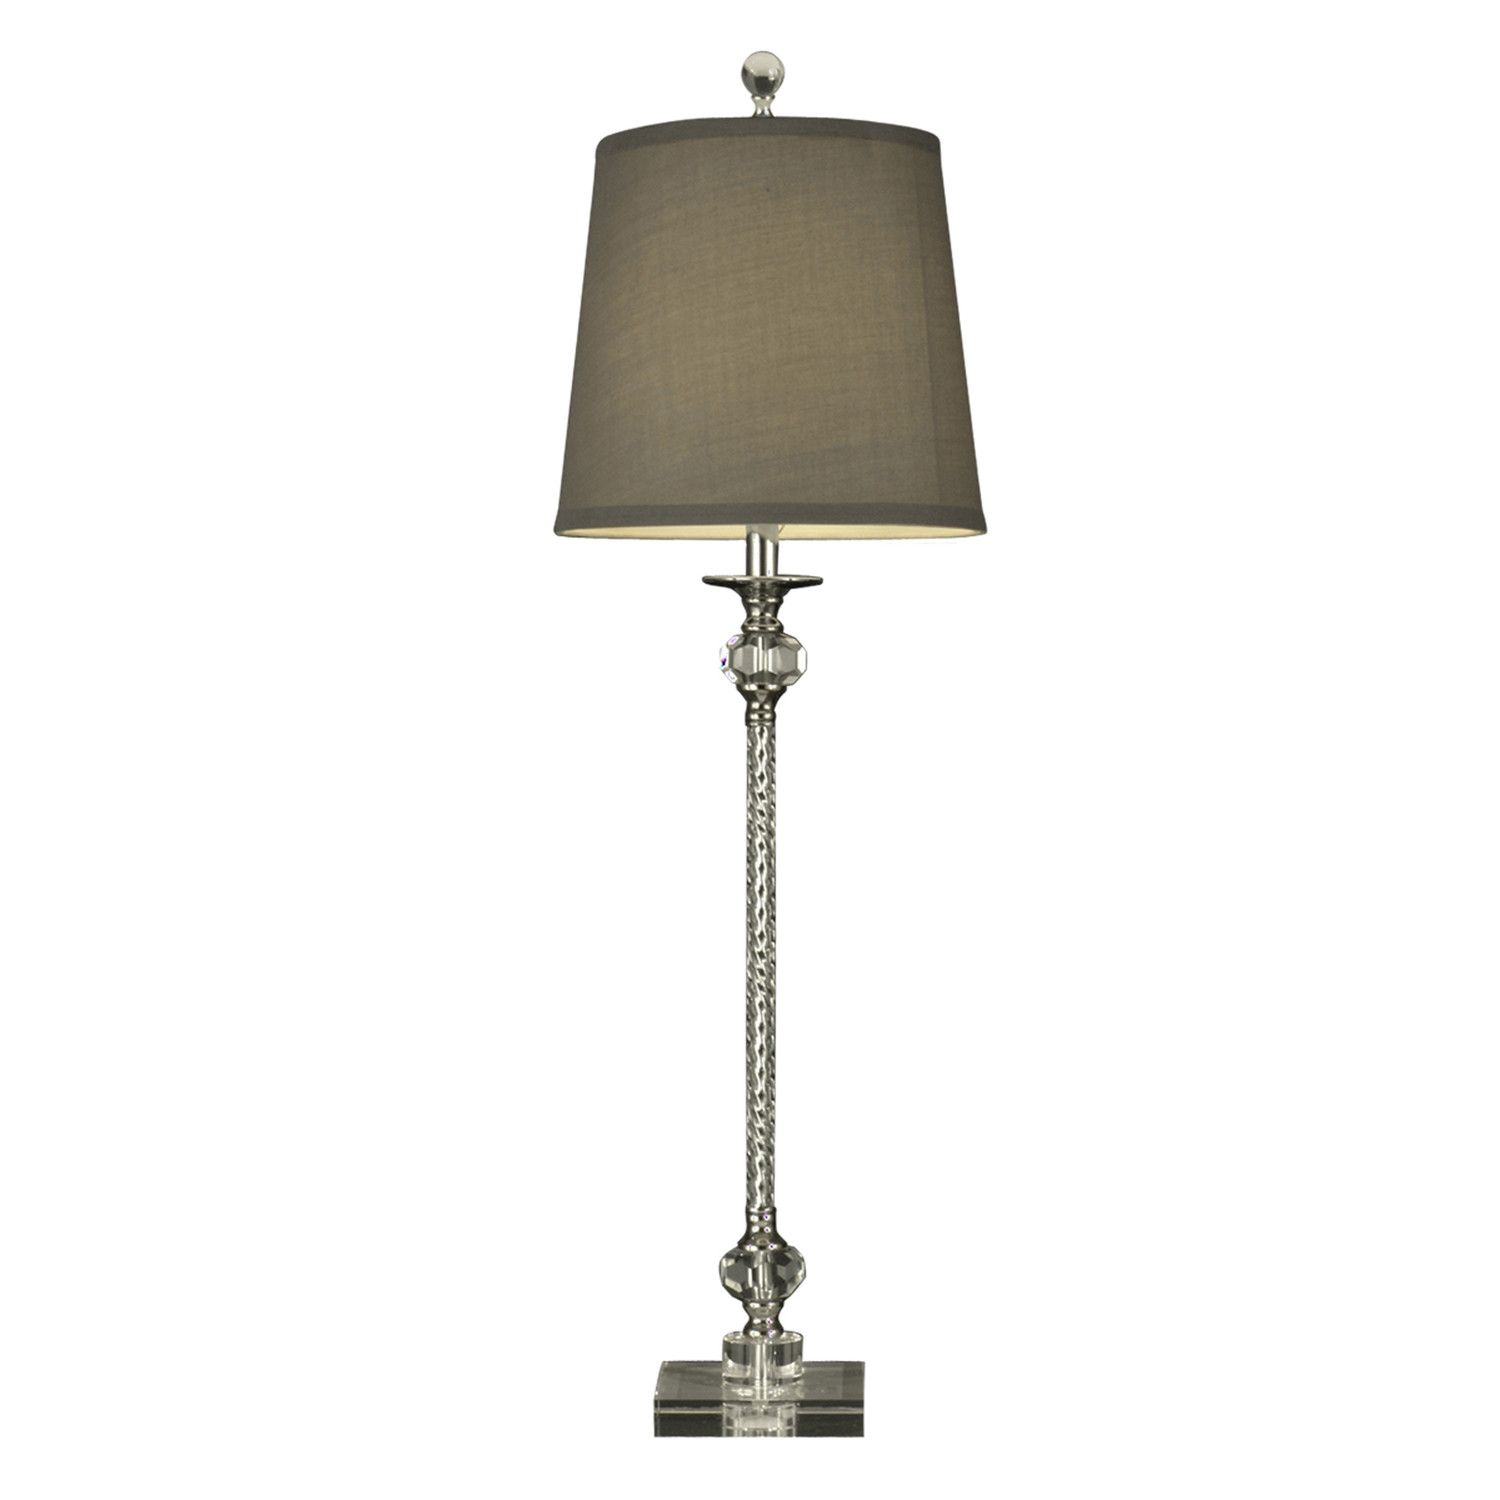 Dale tiffany allister crystal buffet 35 h table lamp with empire dale tiffany allister crystal buffet 35 h table lamp with empire shade aloadofball Images